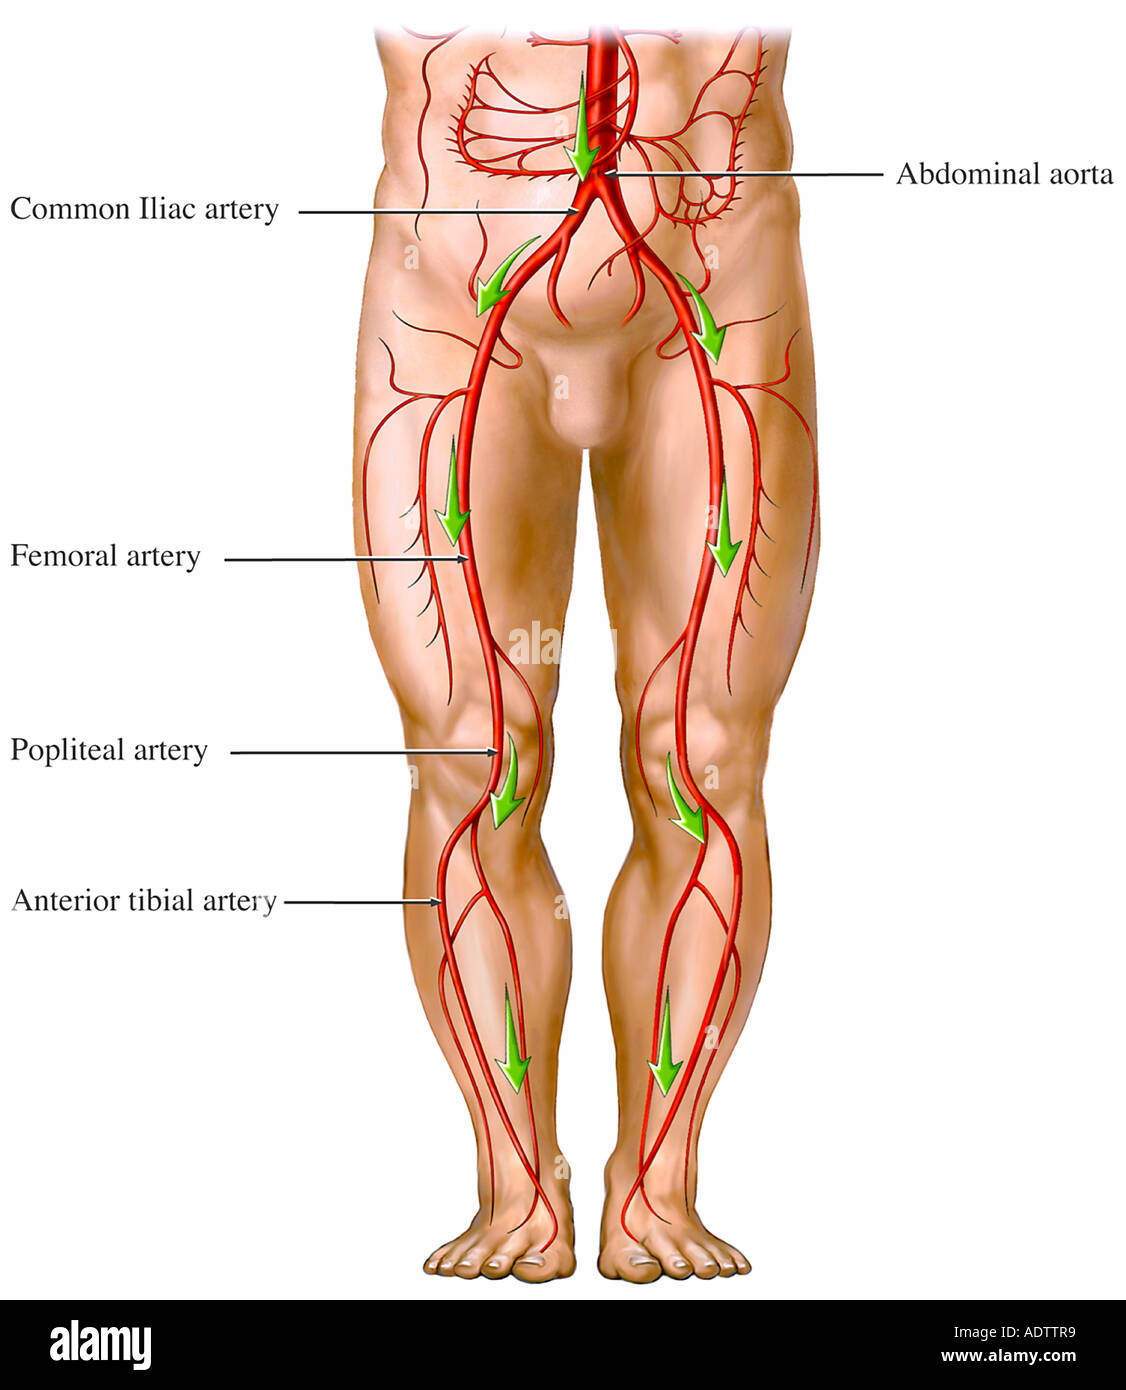 Femoral Artery Stock Photos Femoral Artery Stock Images Alamy